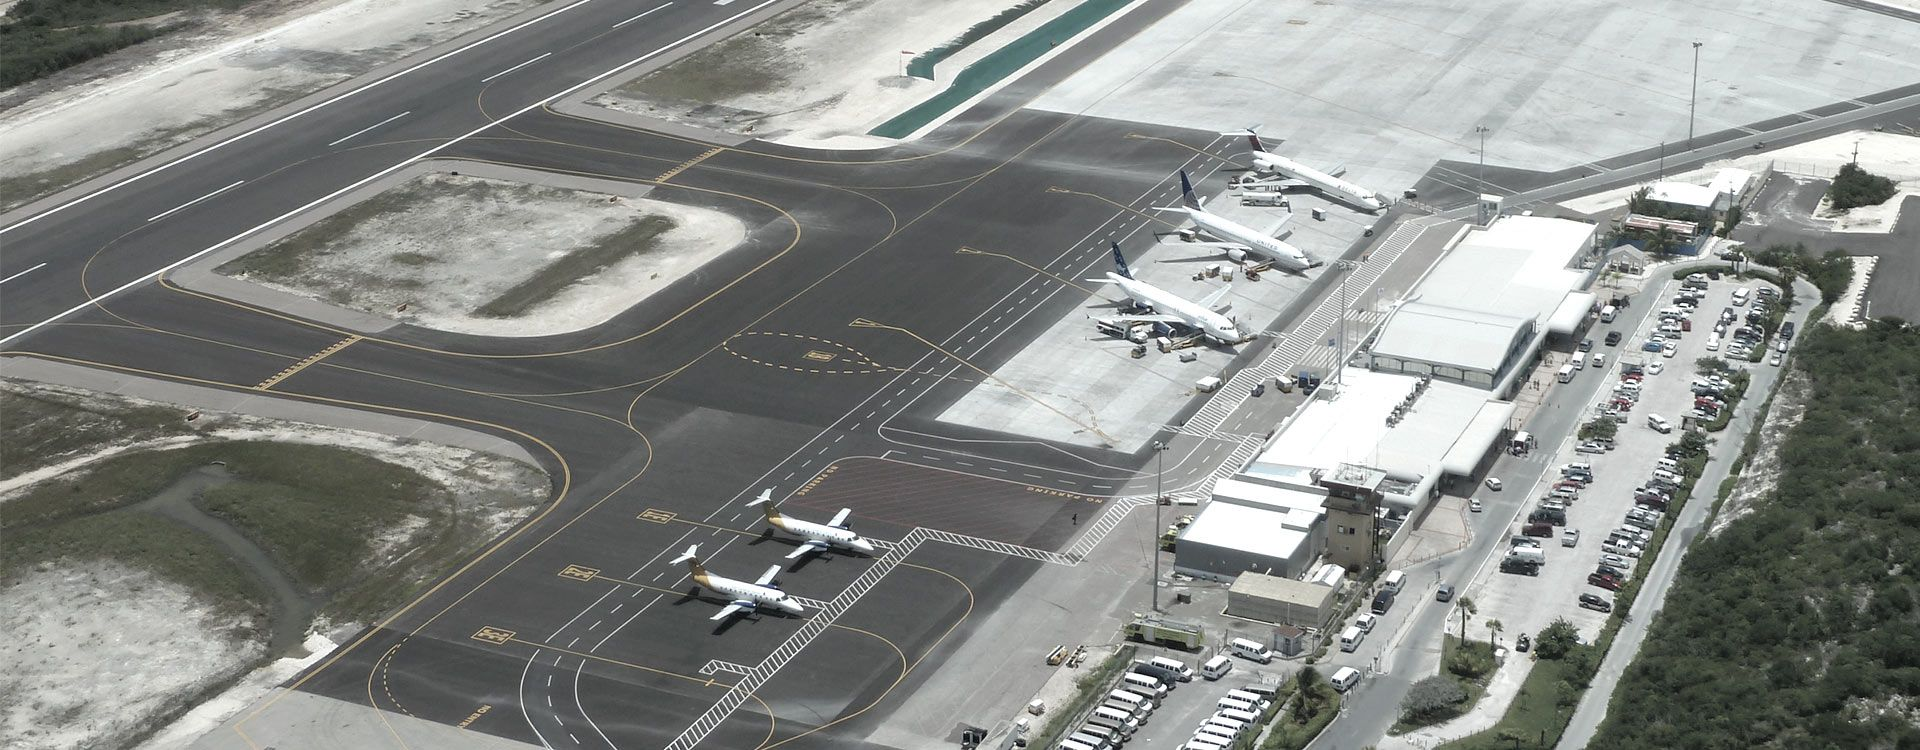 Providenciales International Airport - Turks and Caicos